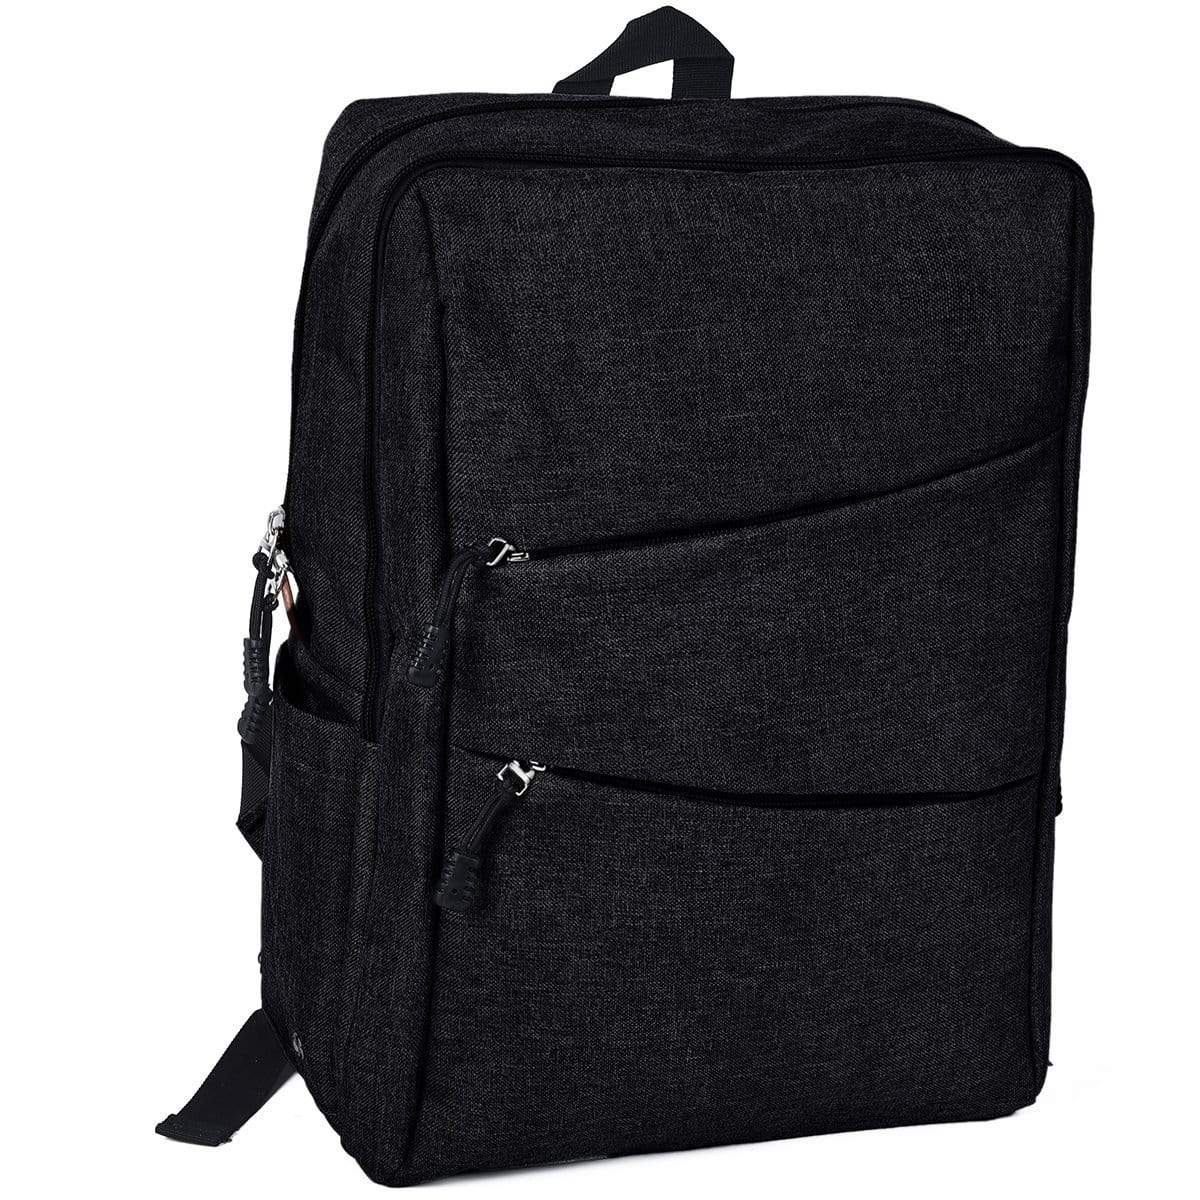 Wingman Backpack - Black